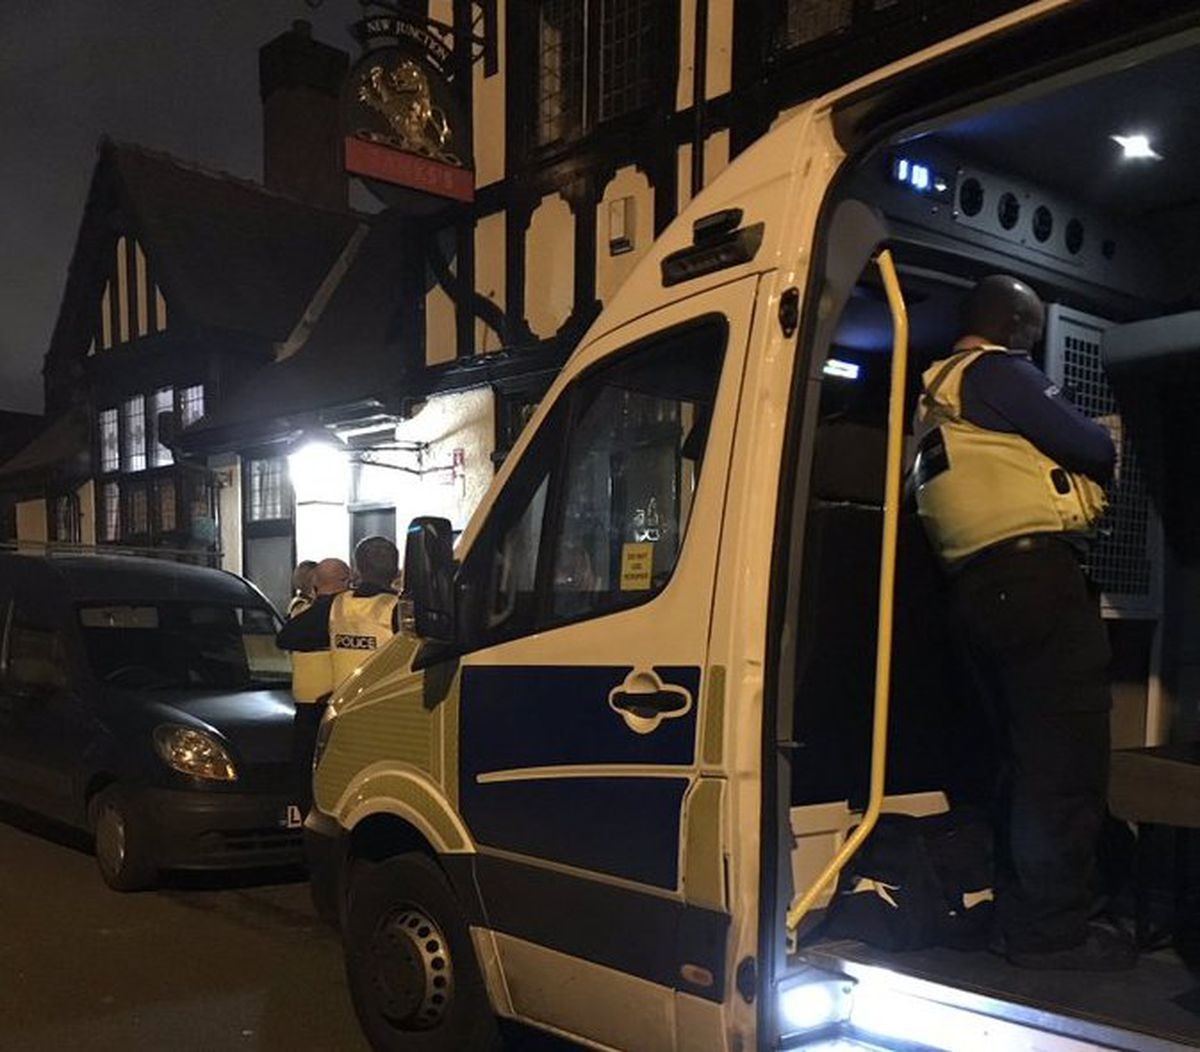 Police outside the New Junction pub. Photo: @BilstonWMP